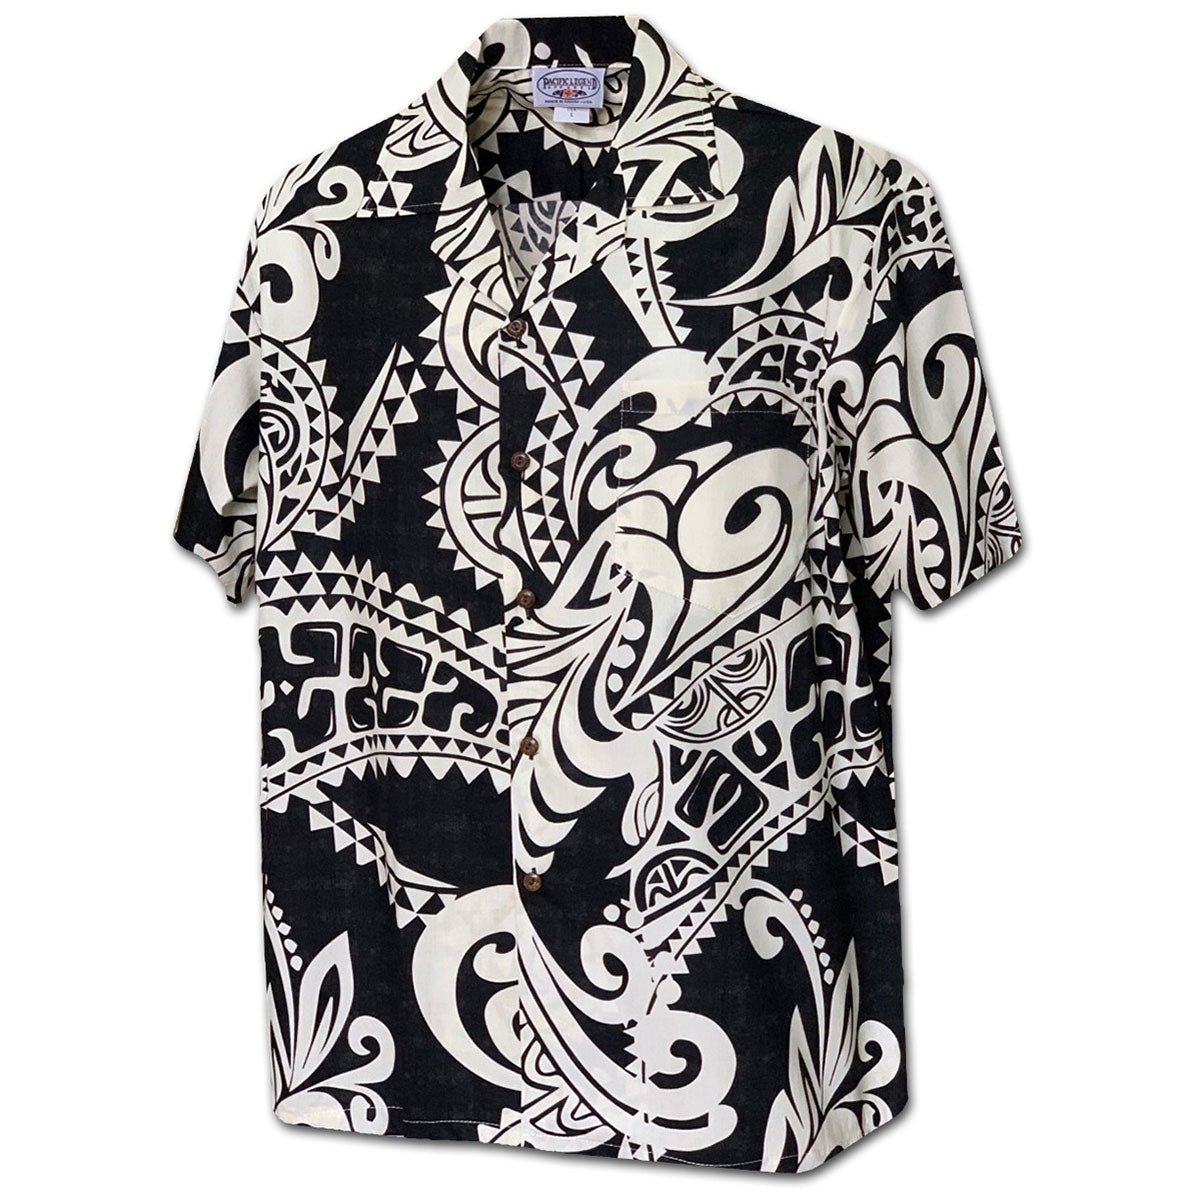 Island Legends Black Hawaiian Shirt